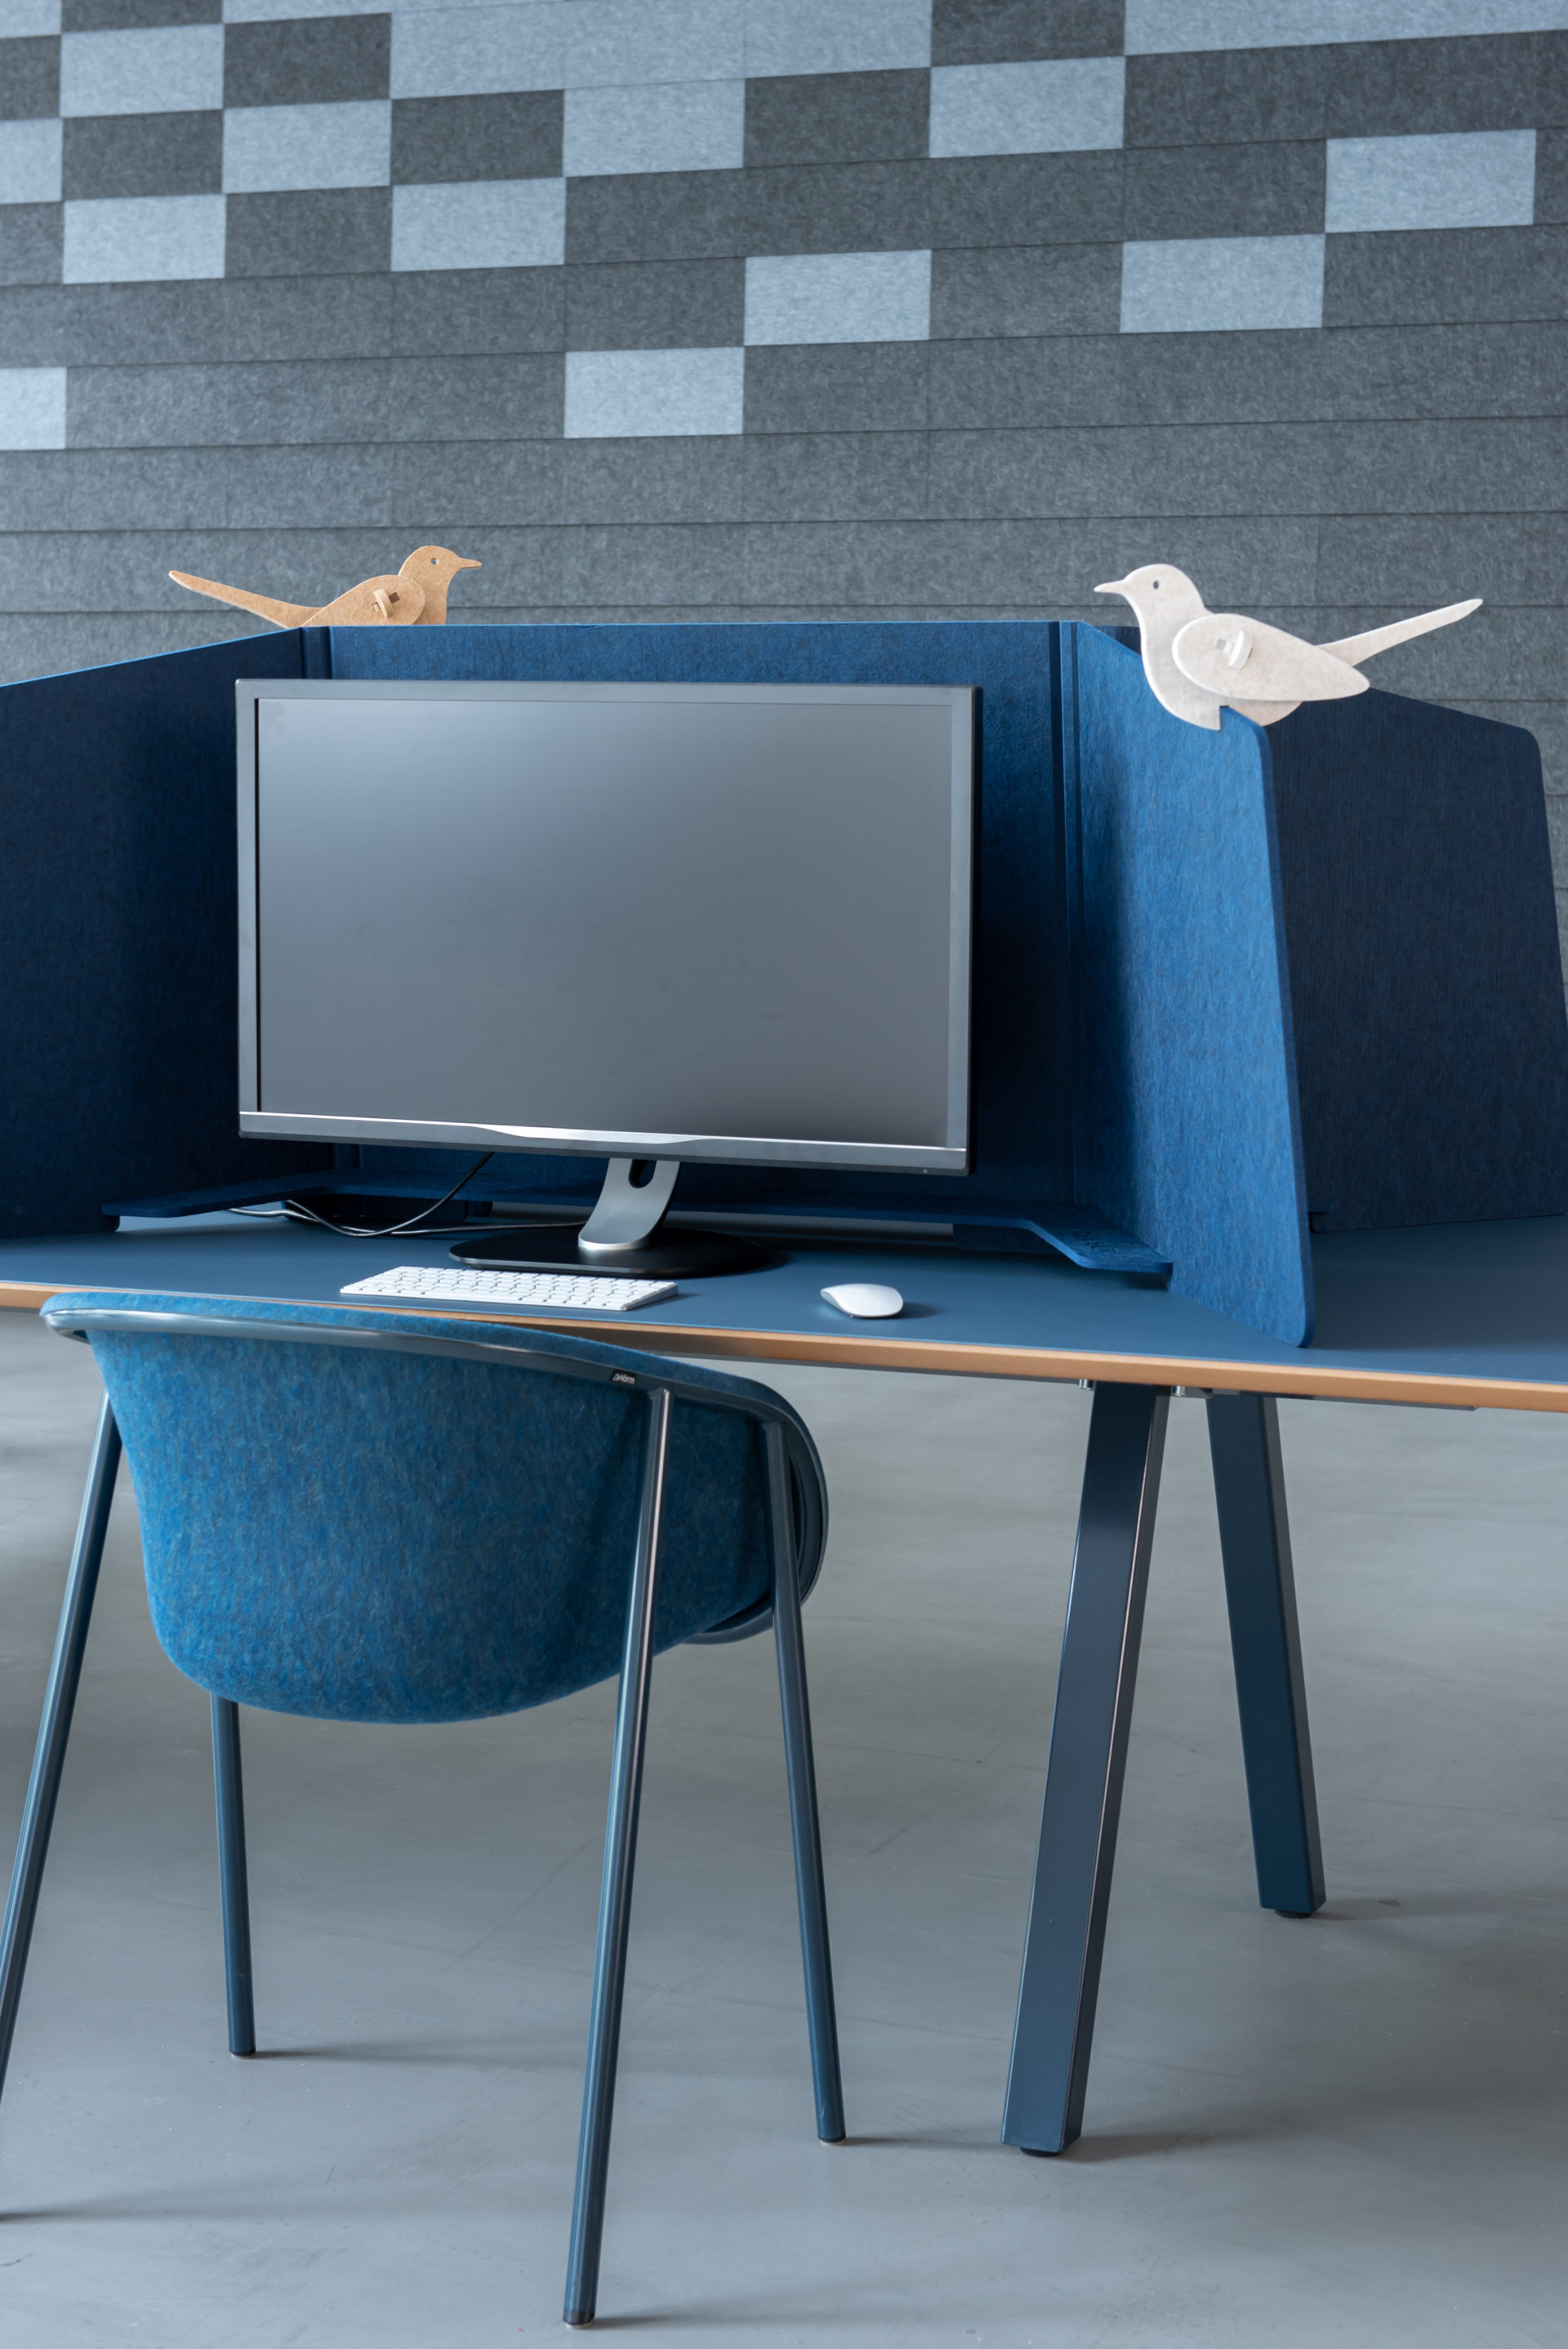 ReFelt PET Felt Workplace Divider 1.5m blue 2